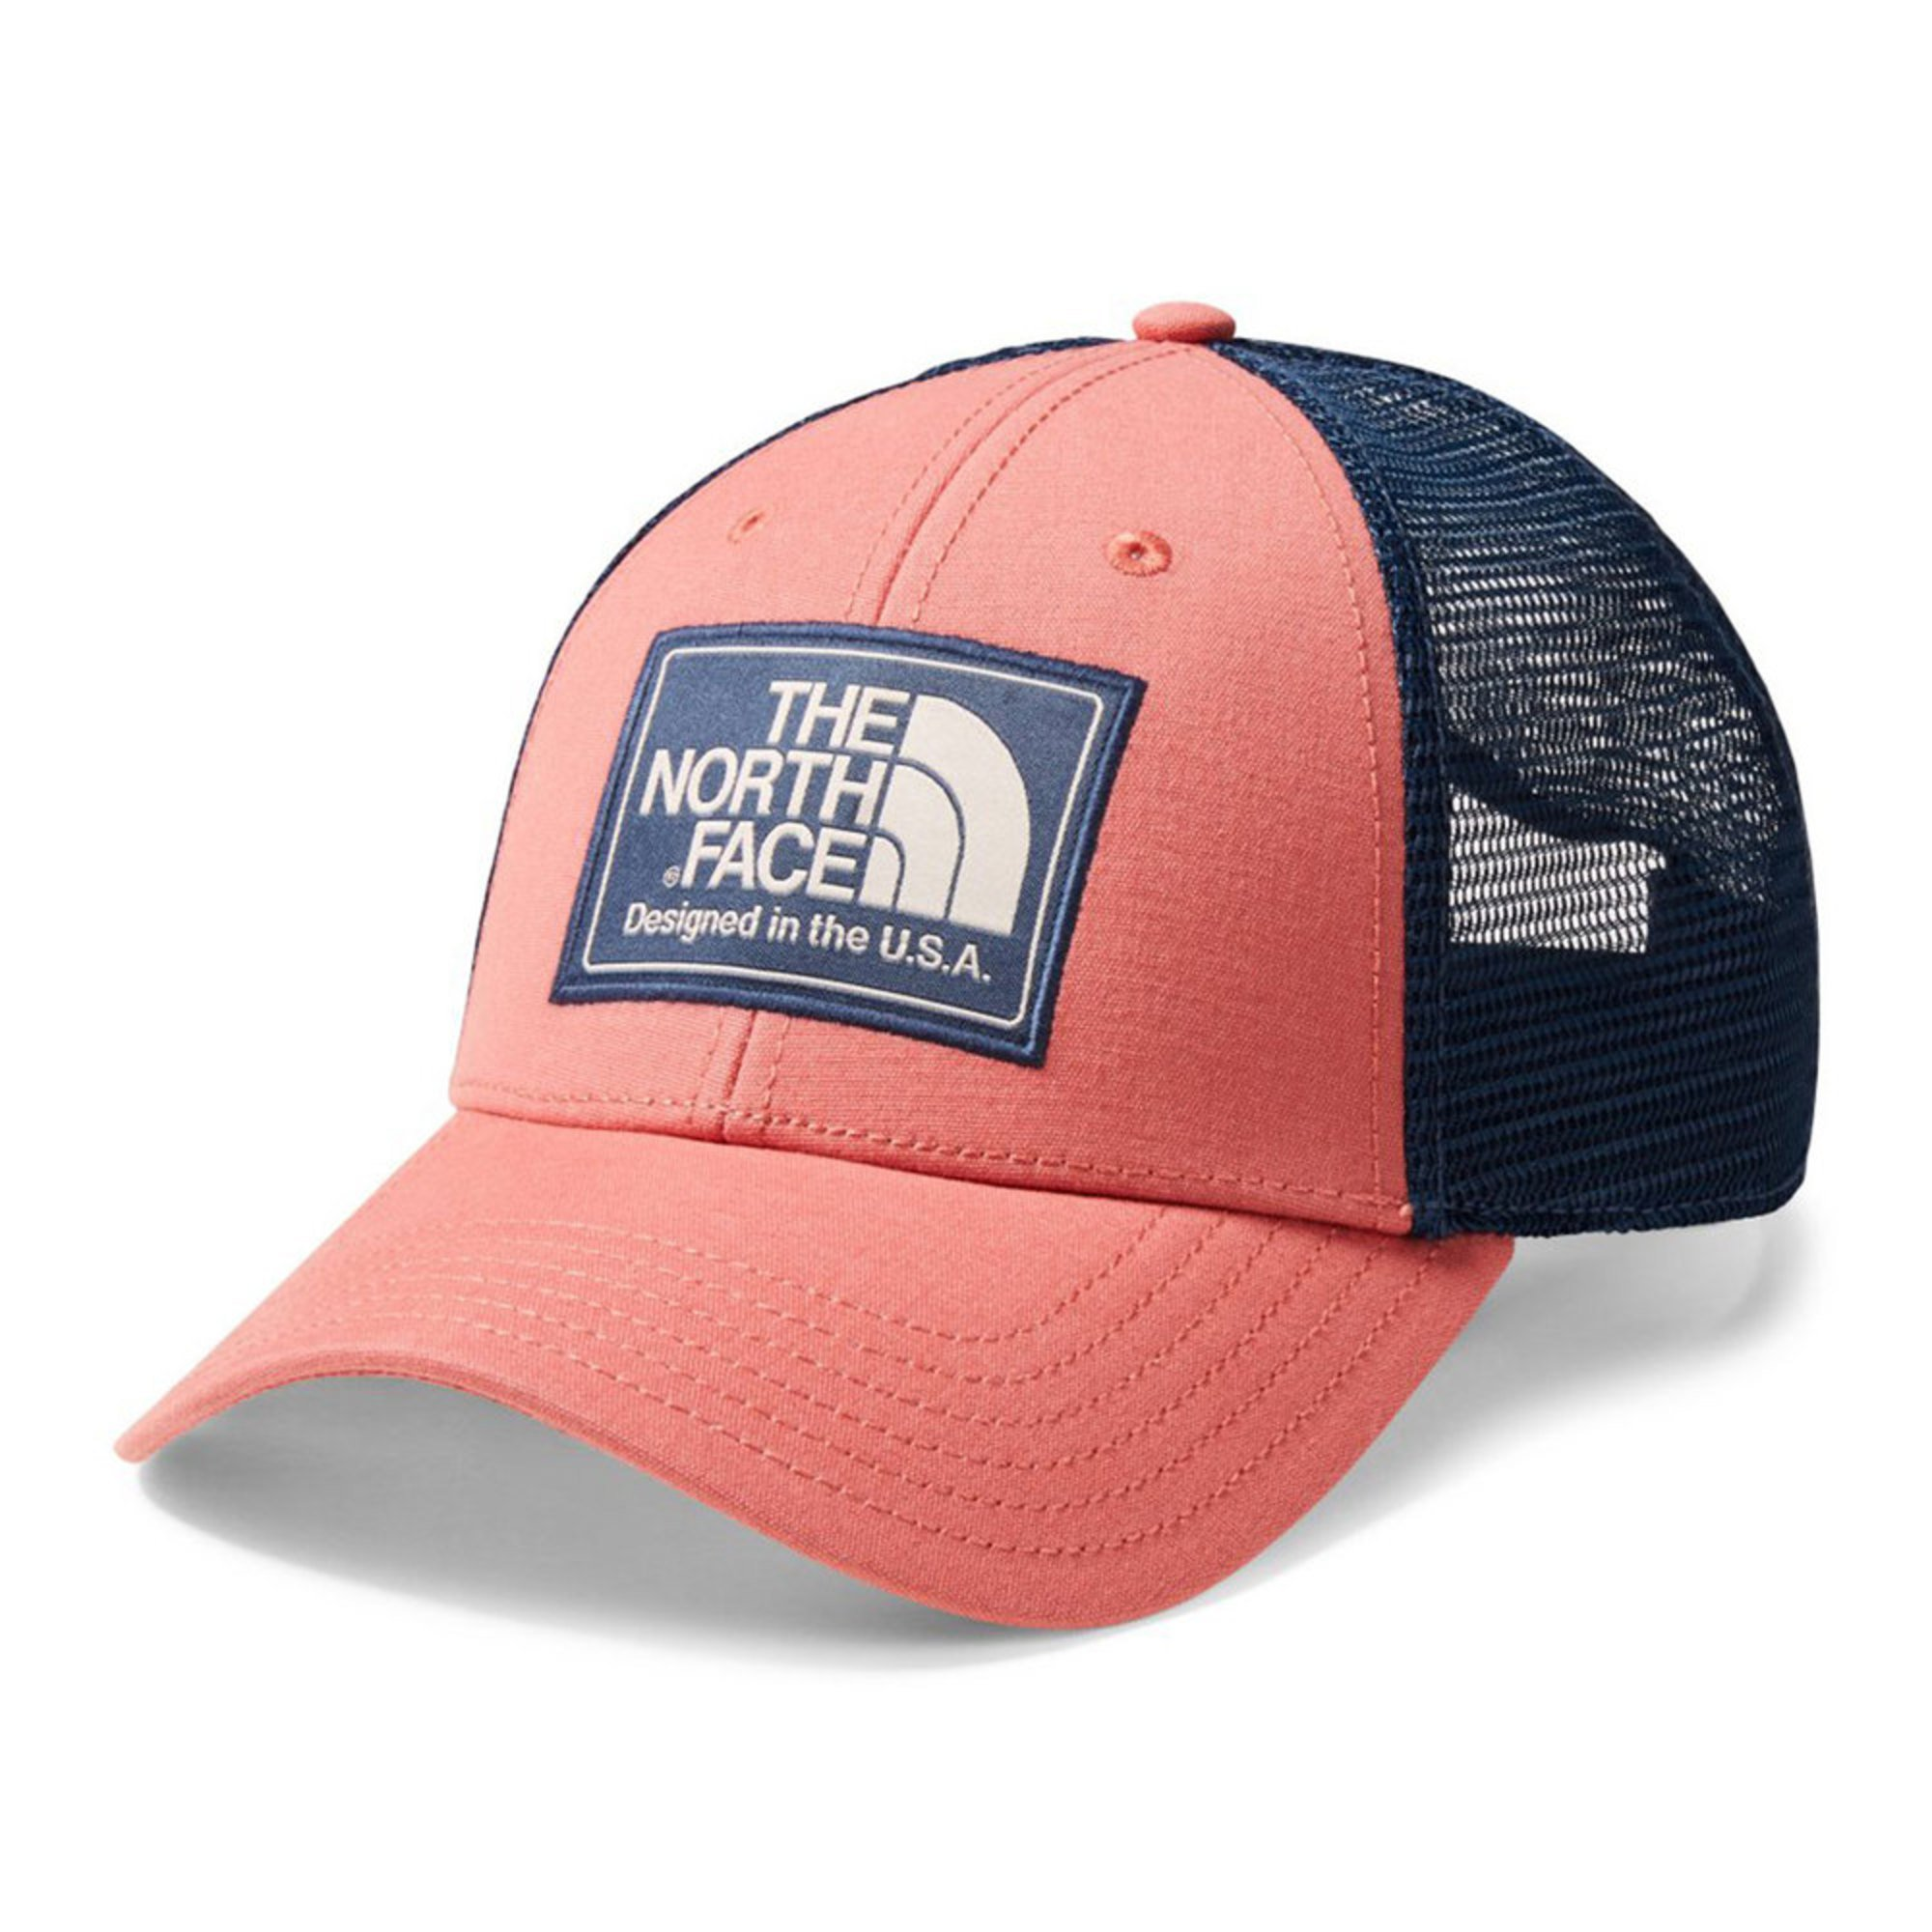 36d4201de The North Face Men's Mudder Trucker Hat